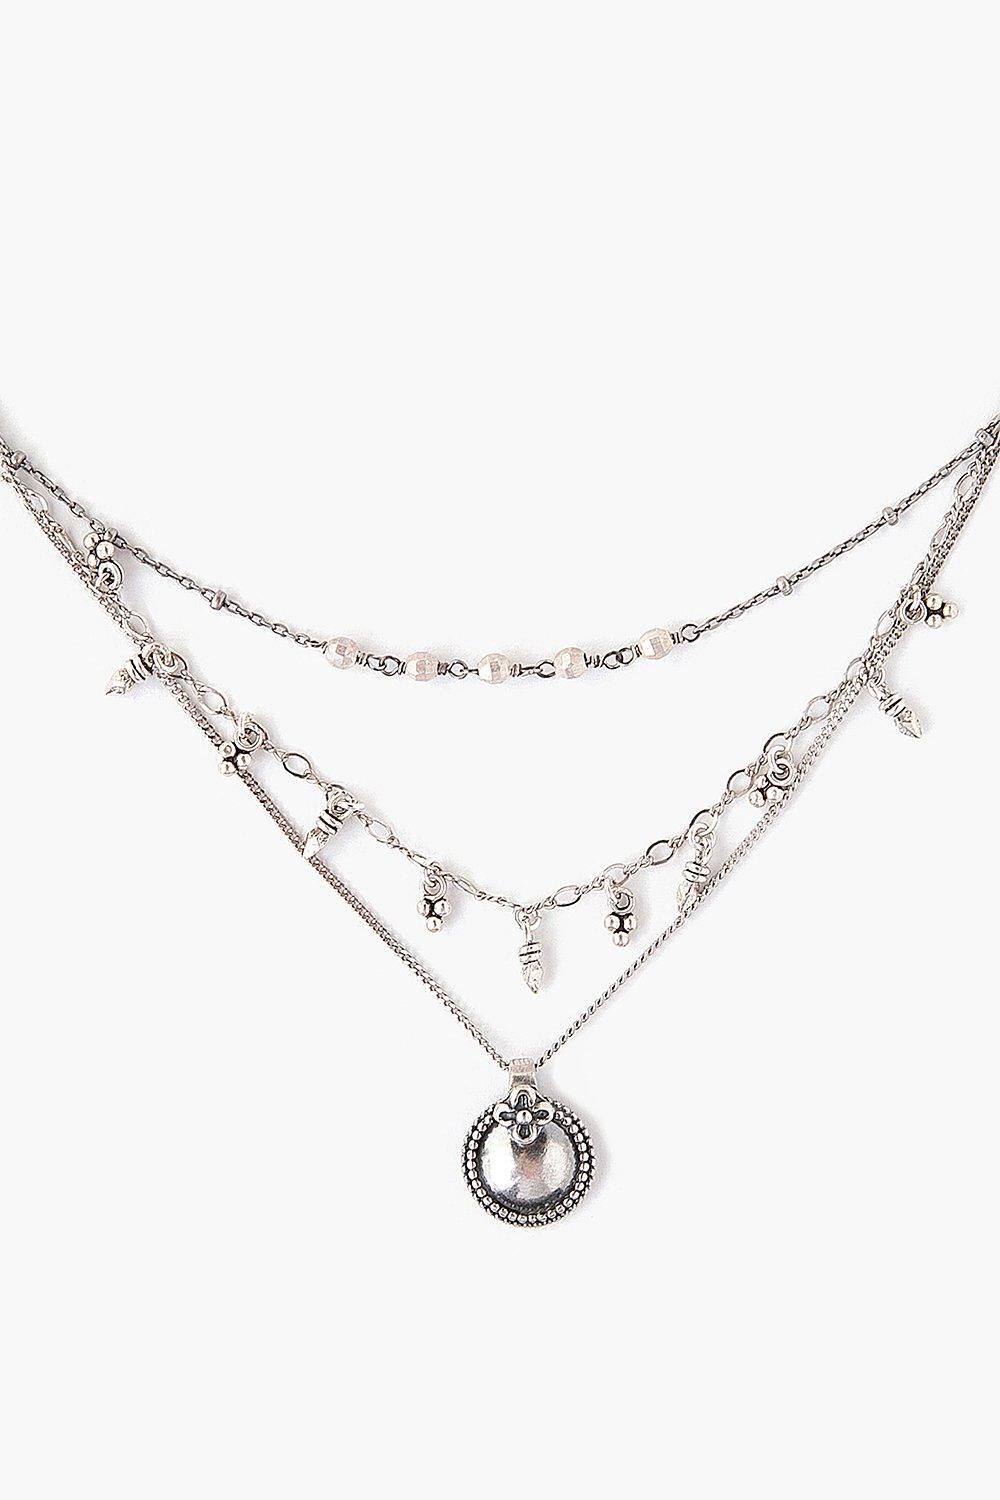 Silver Coin Charm Pre-Layered Necklace